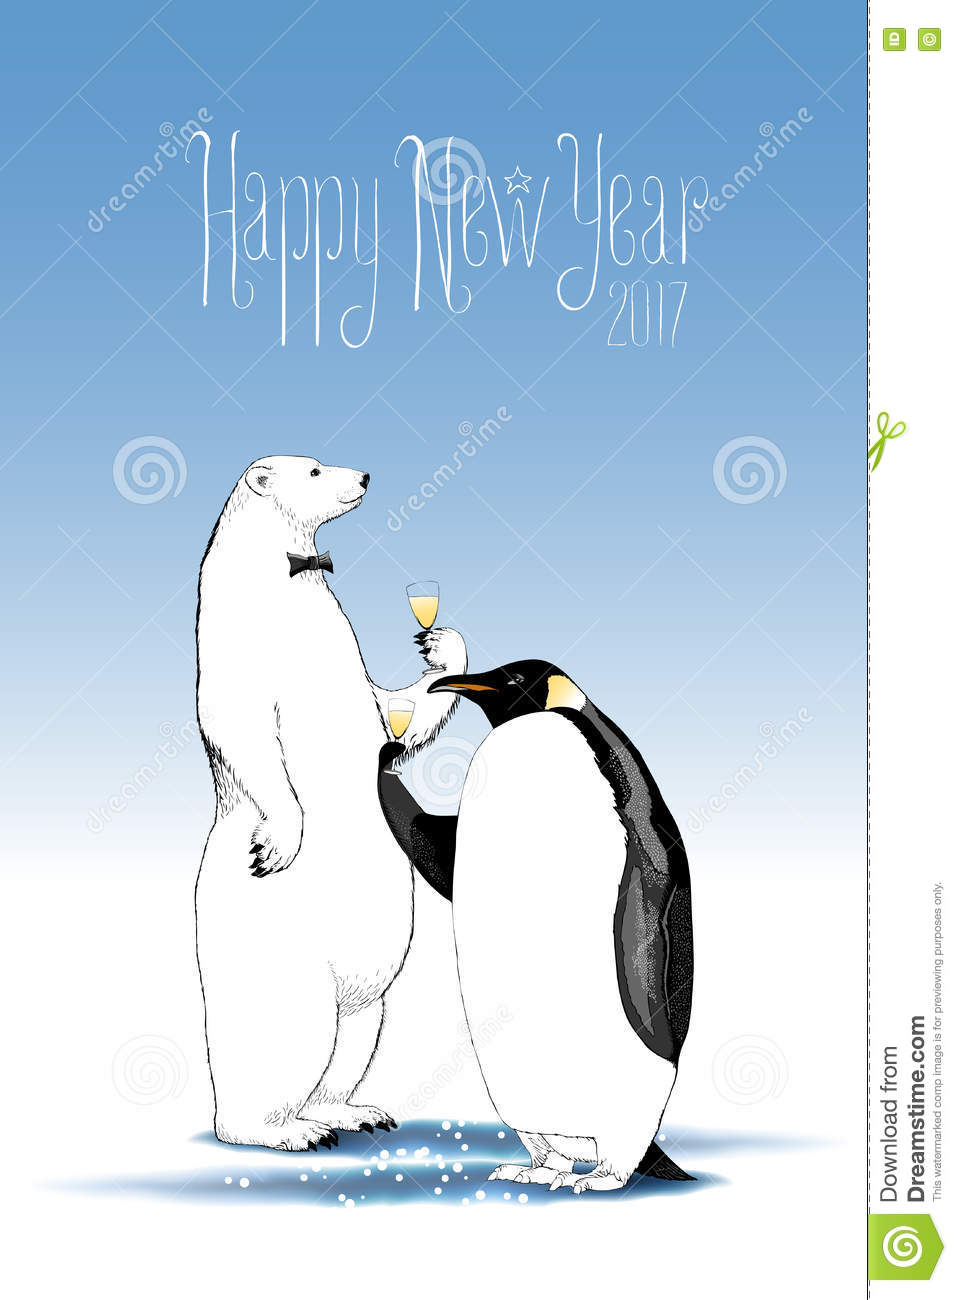 Happy New Year 2017 Vector Drawing, Greeting Card Stock ...